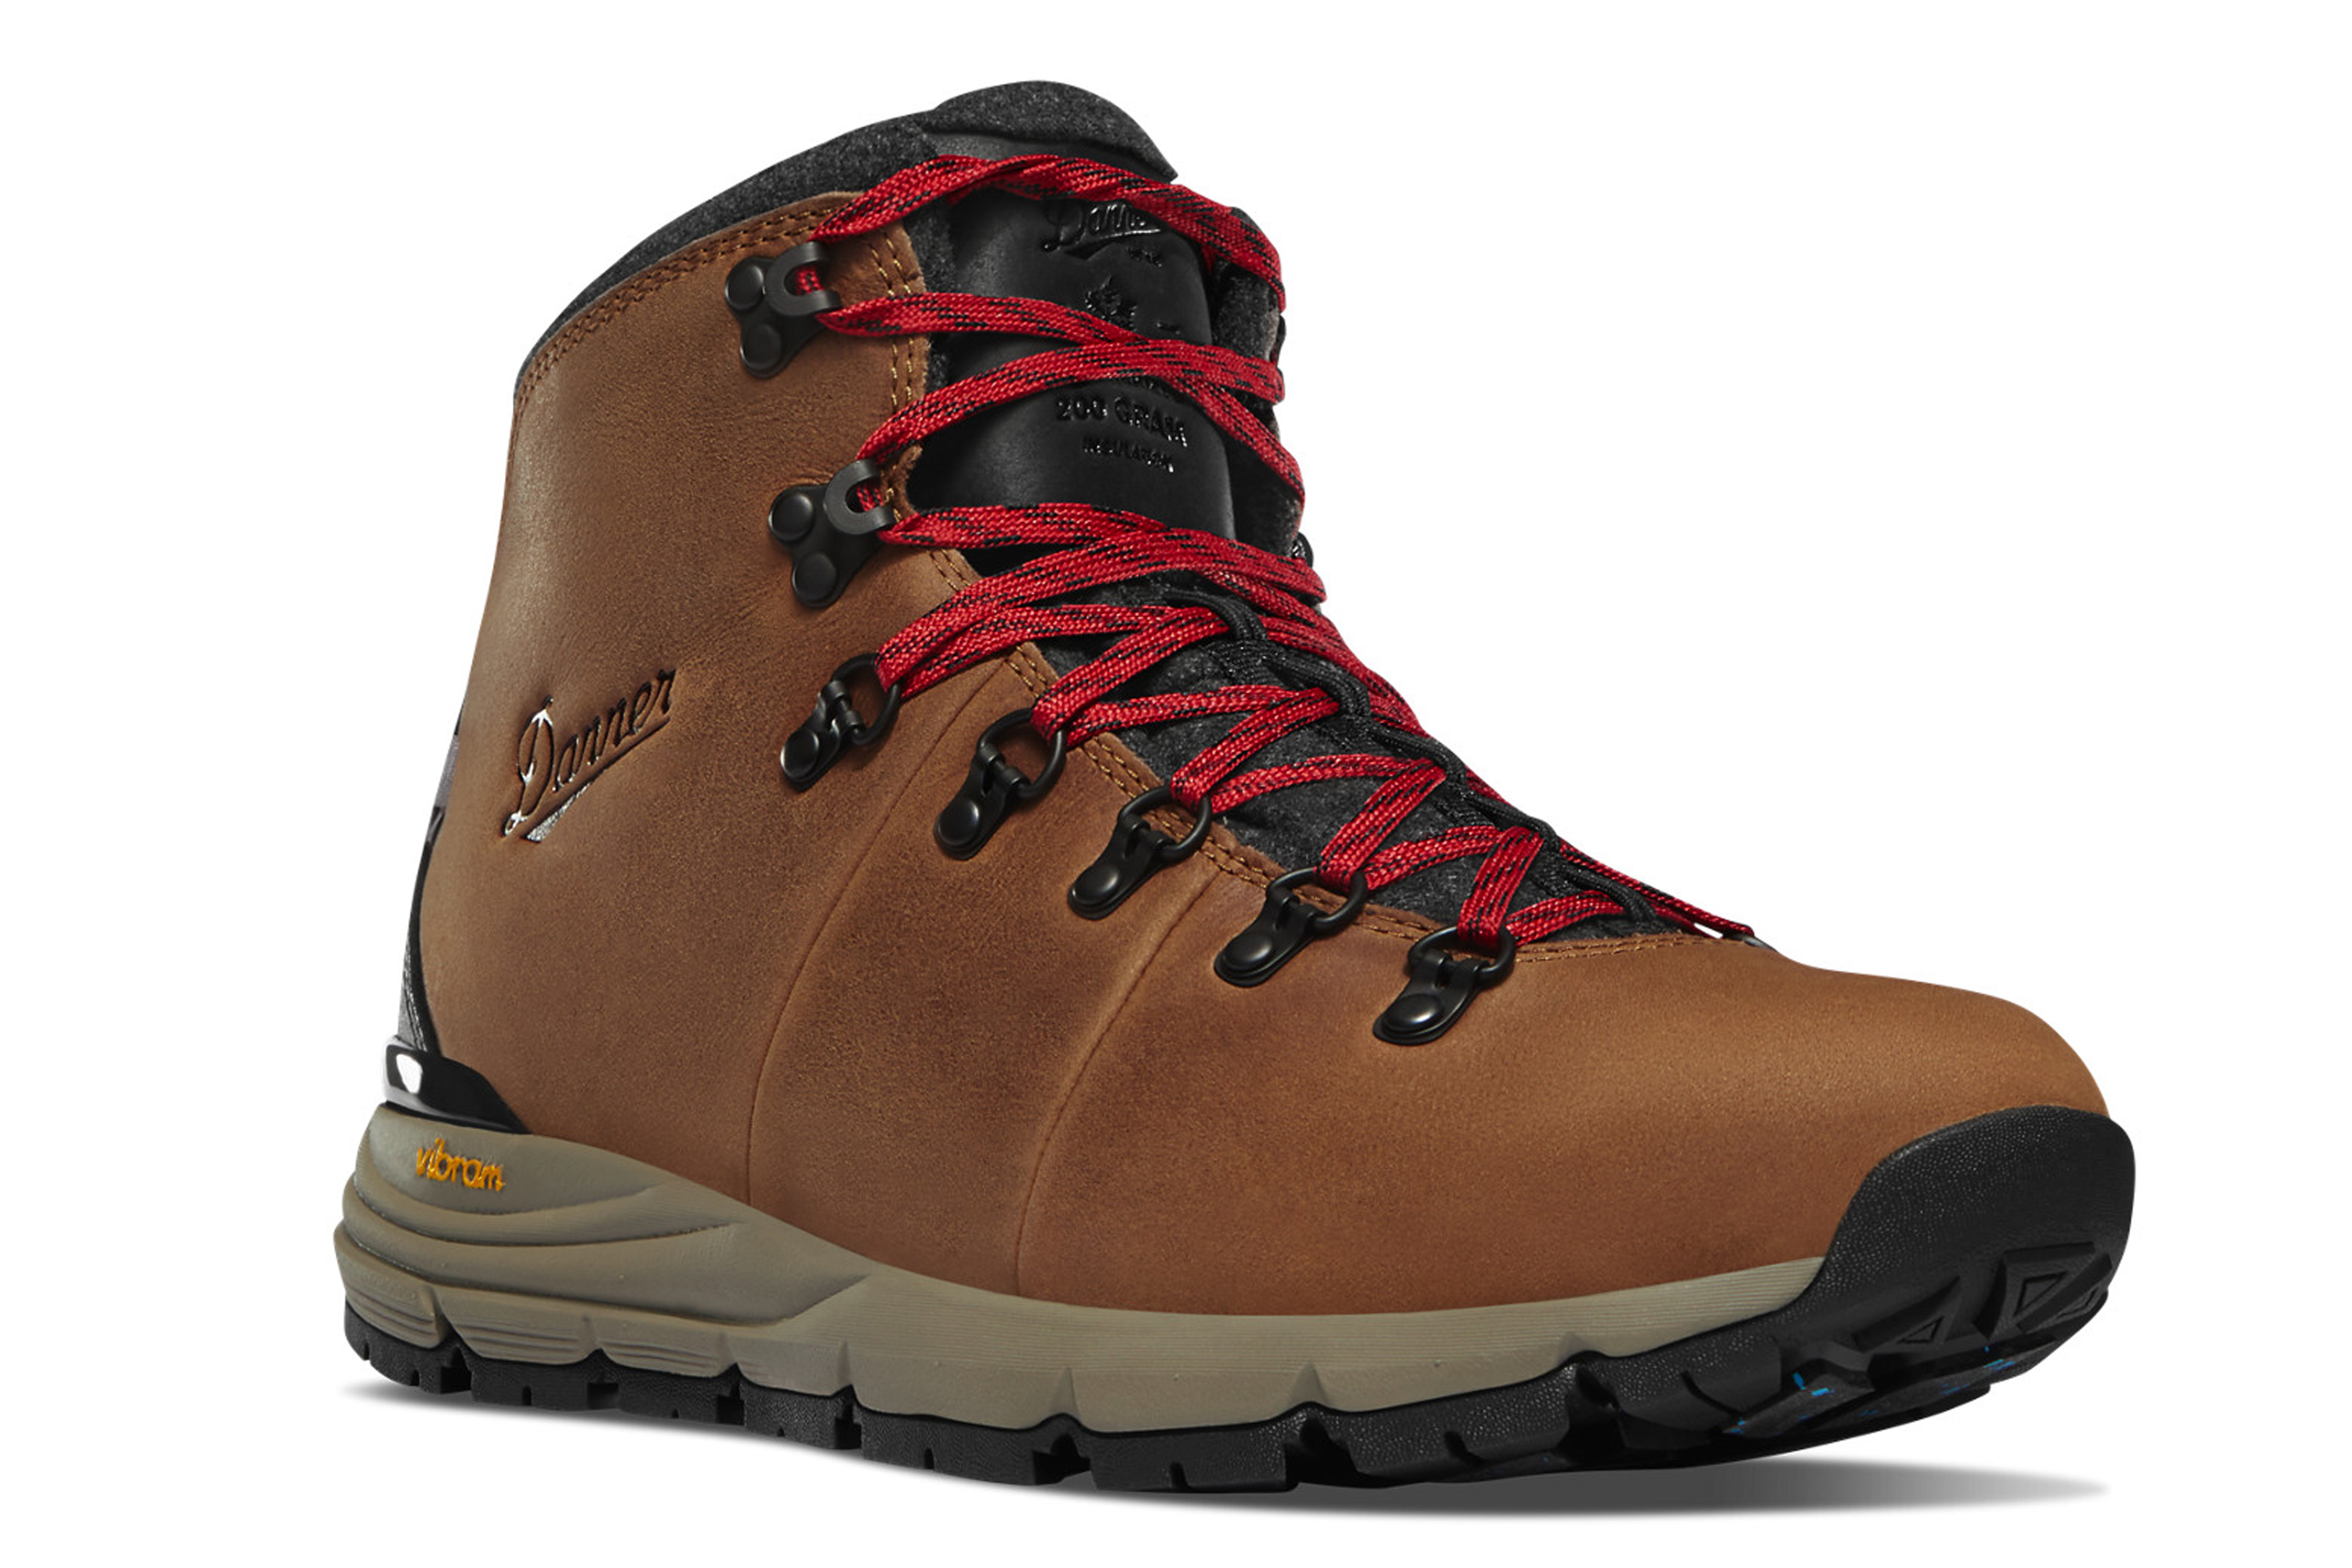 Best_Winter_Boot_Men_Style_Danner_Mountain_600_insulated